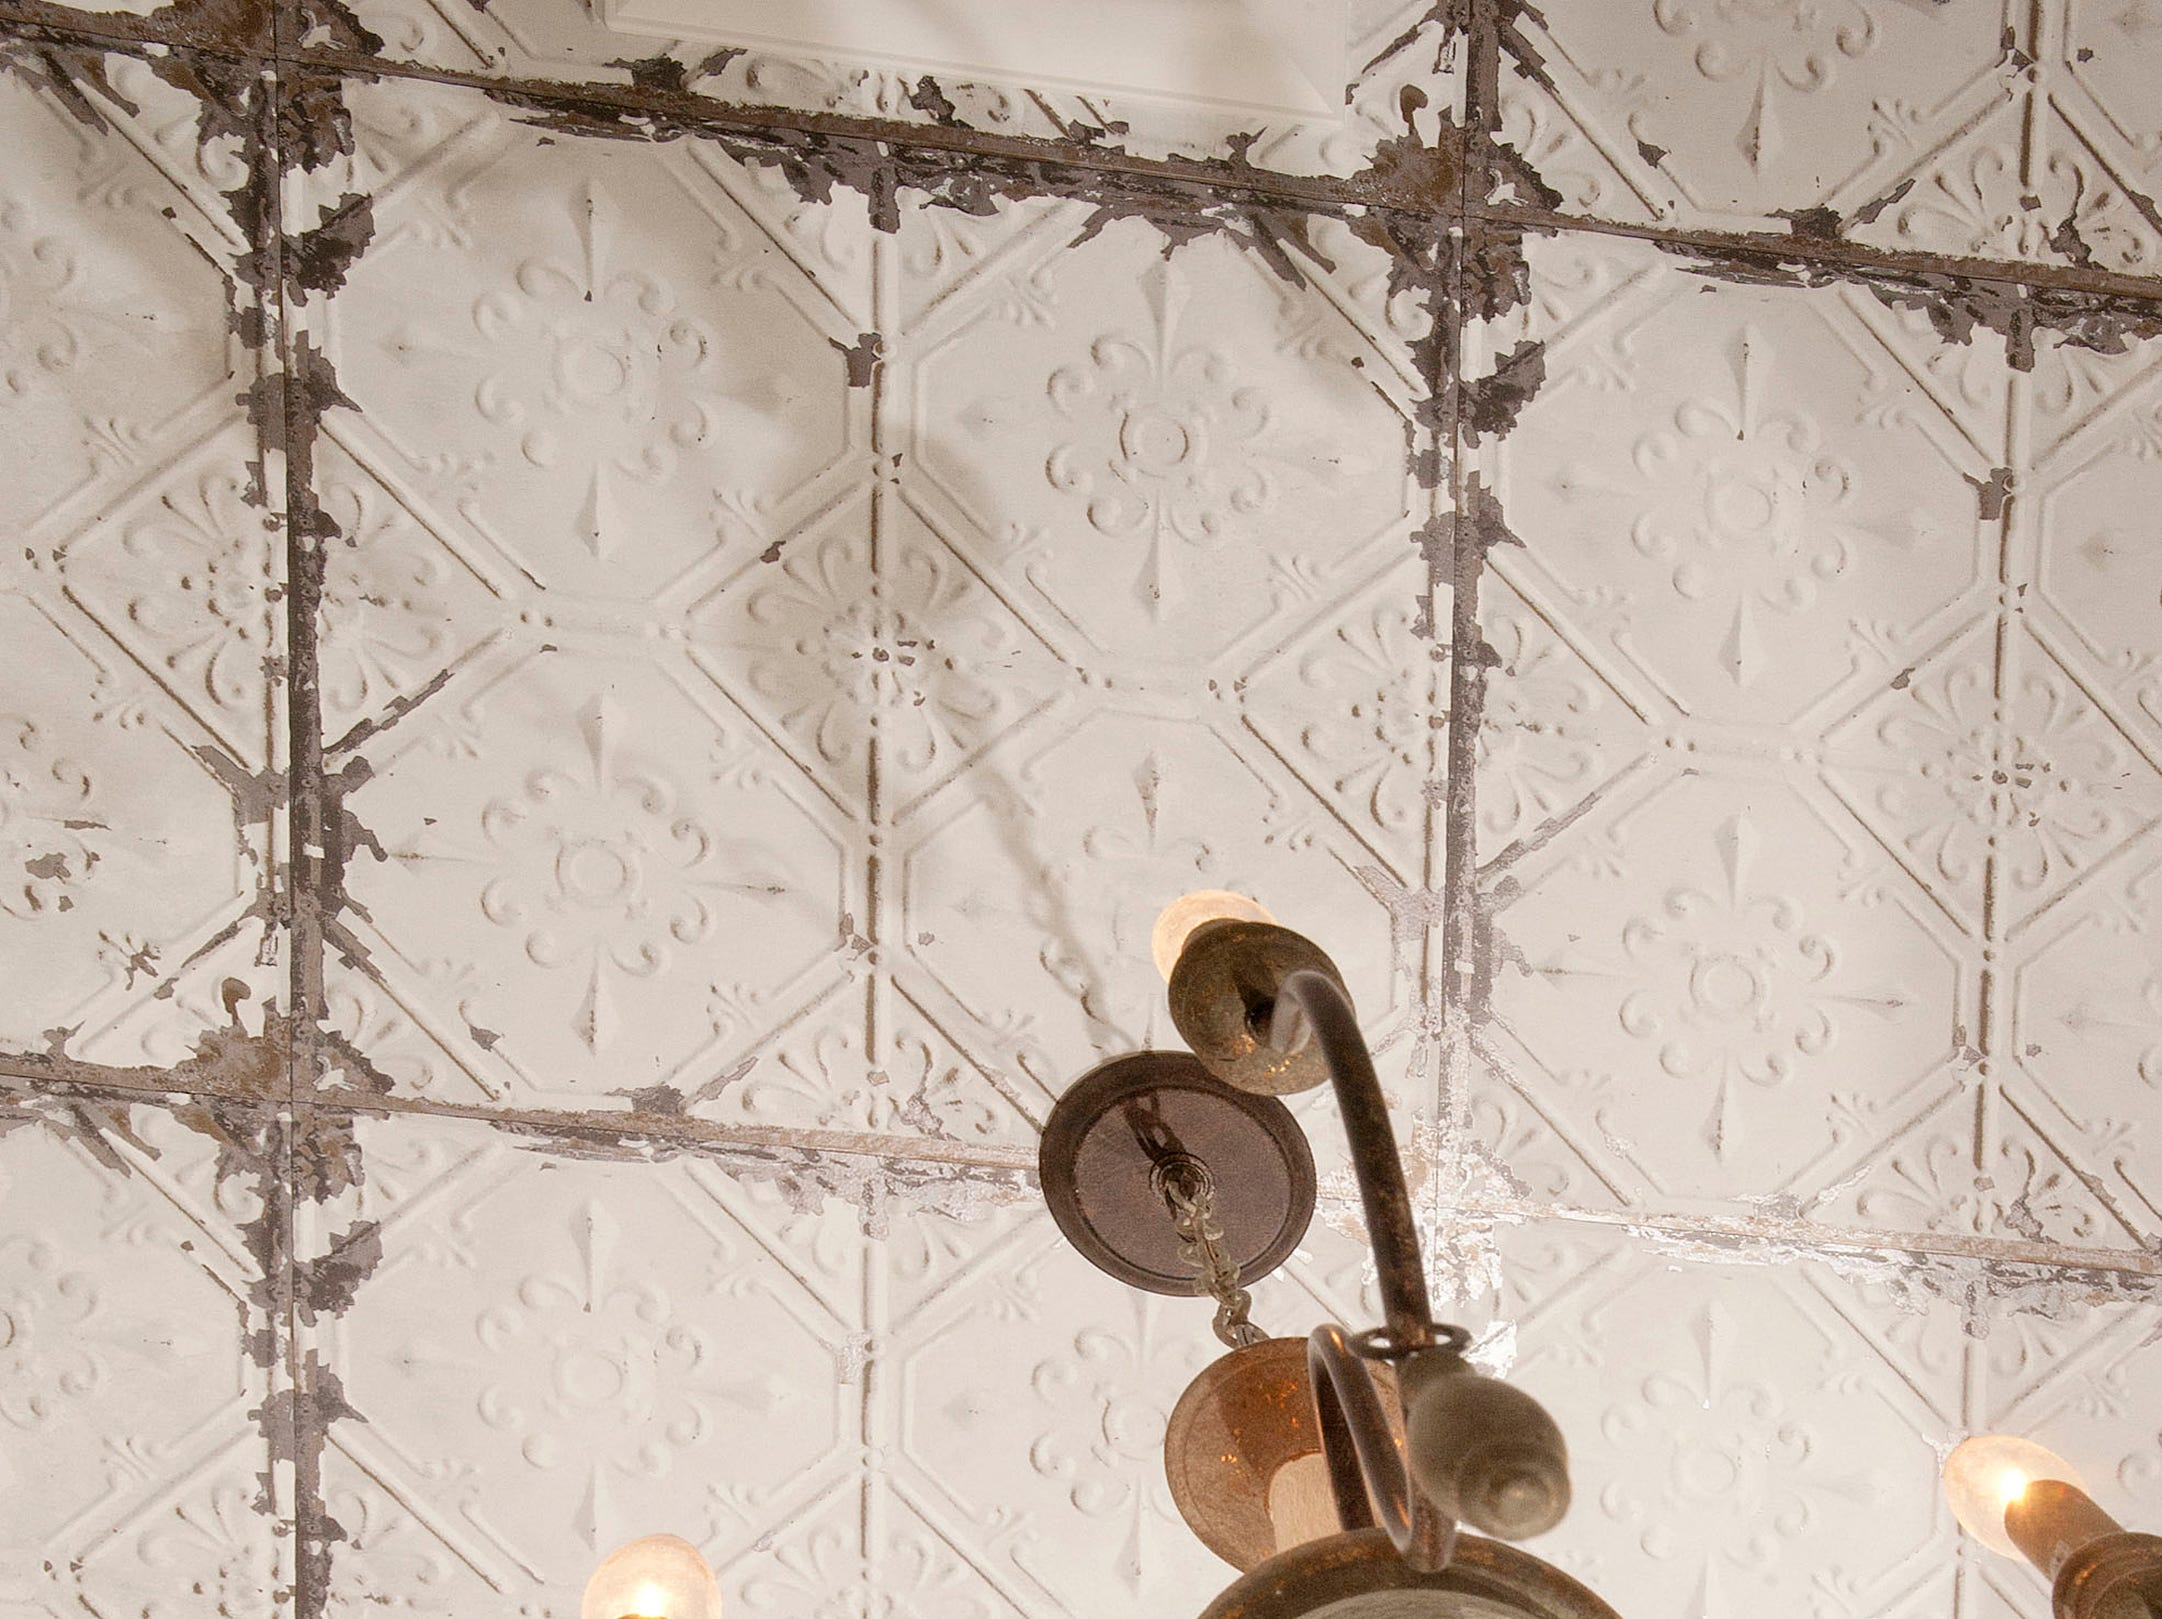 The Hannah's first floor bathroom features wallpaper that resembles antique tin ceiling tiles.01 March 2019